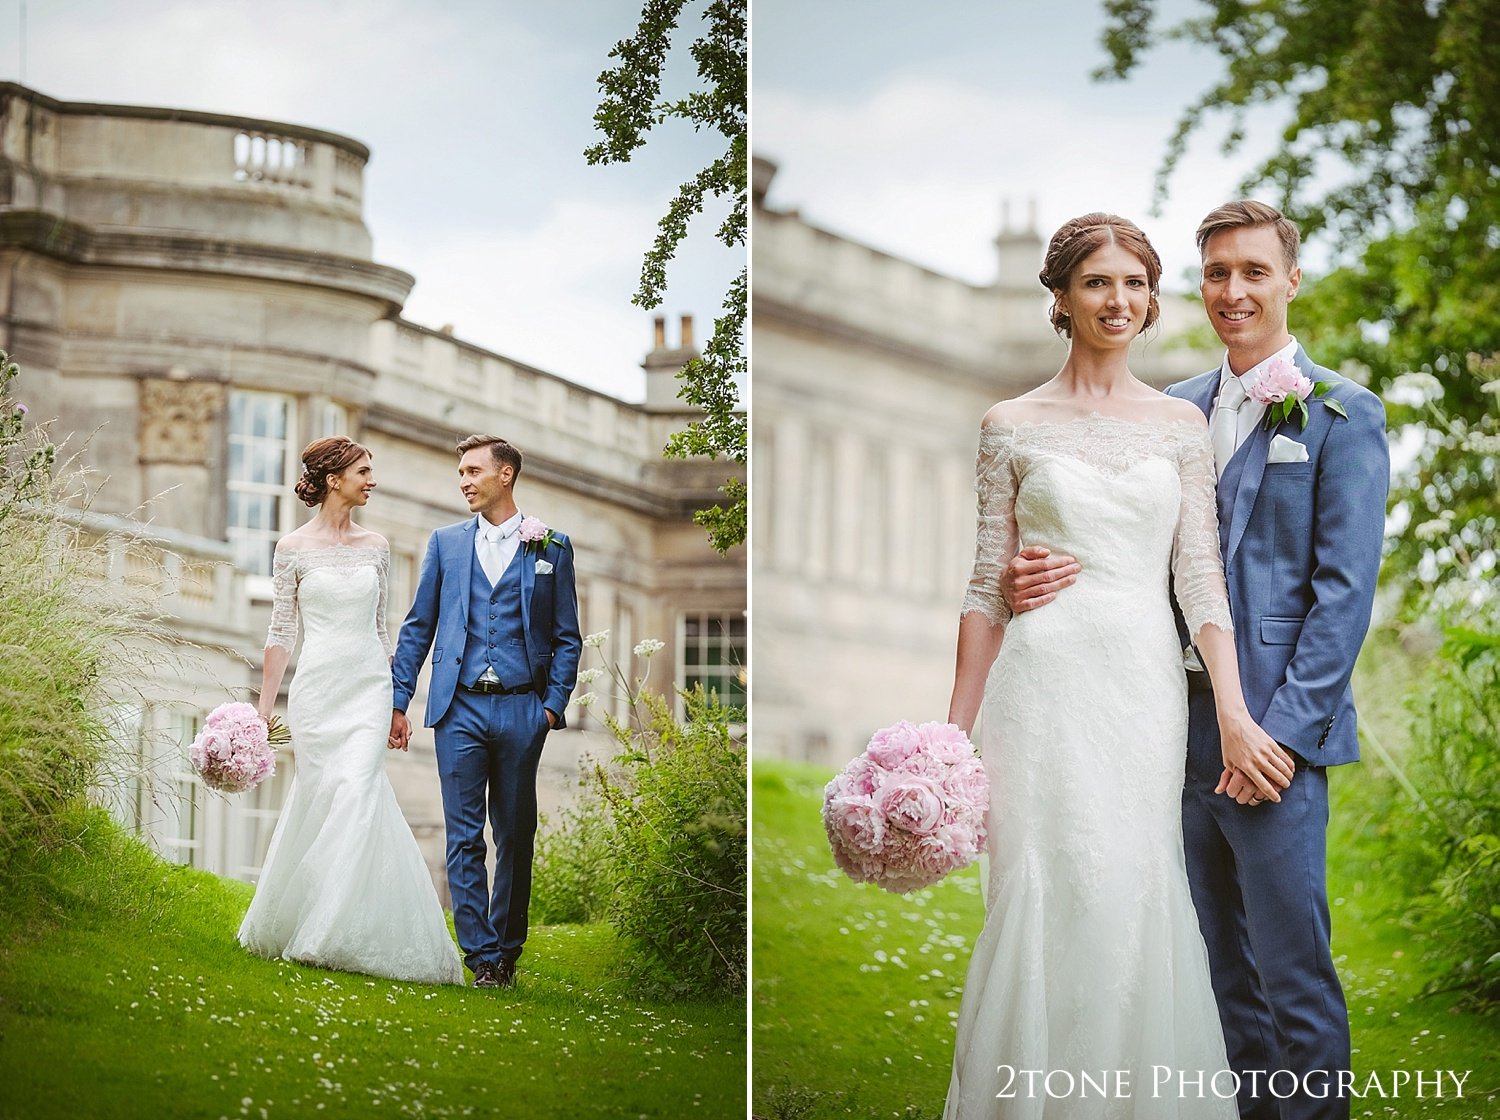 Natural wedding photography at Wynyard Hall by Durham based wedding photographers www.2tonephotography.co.uk